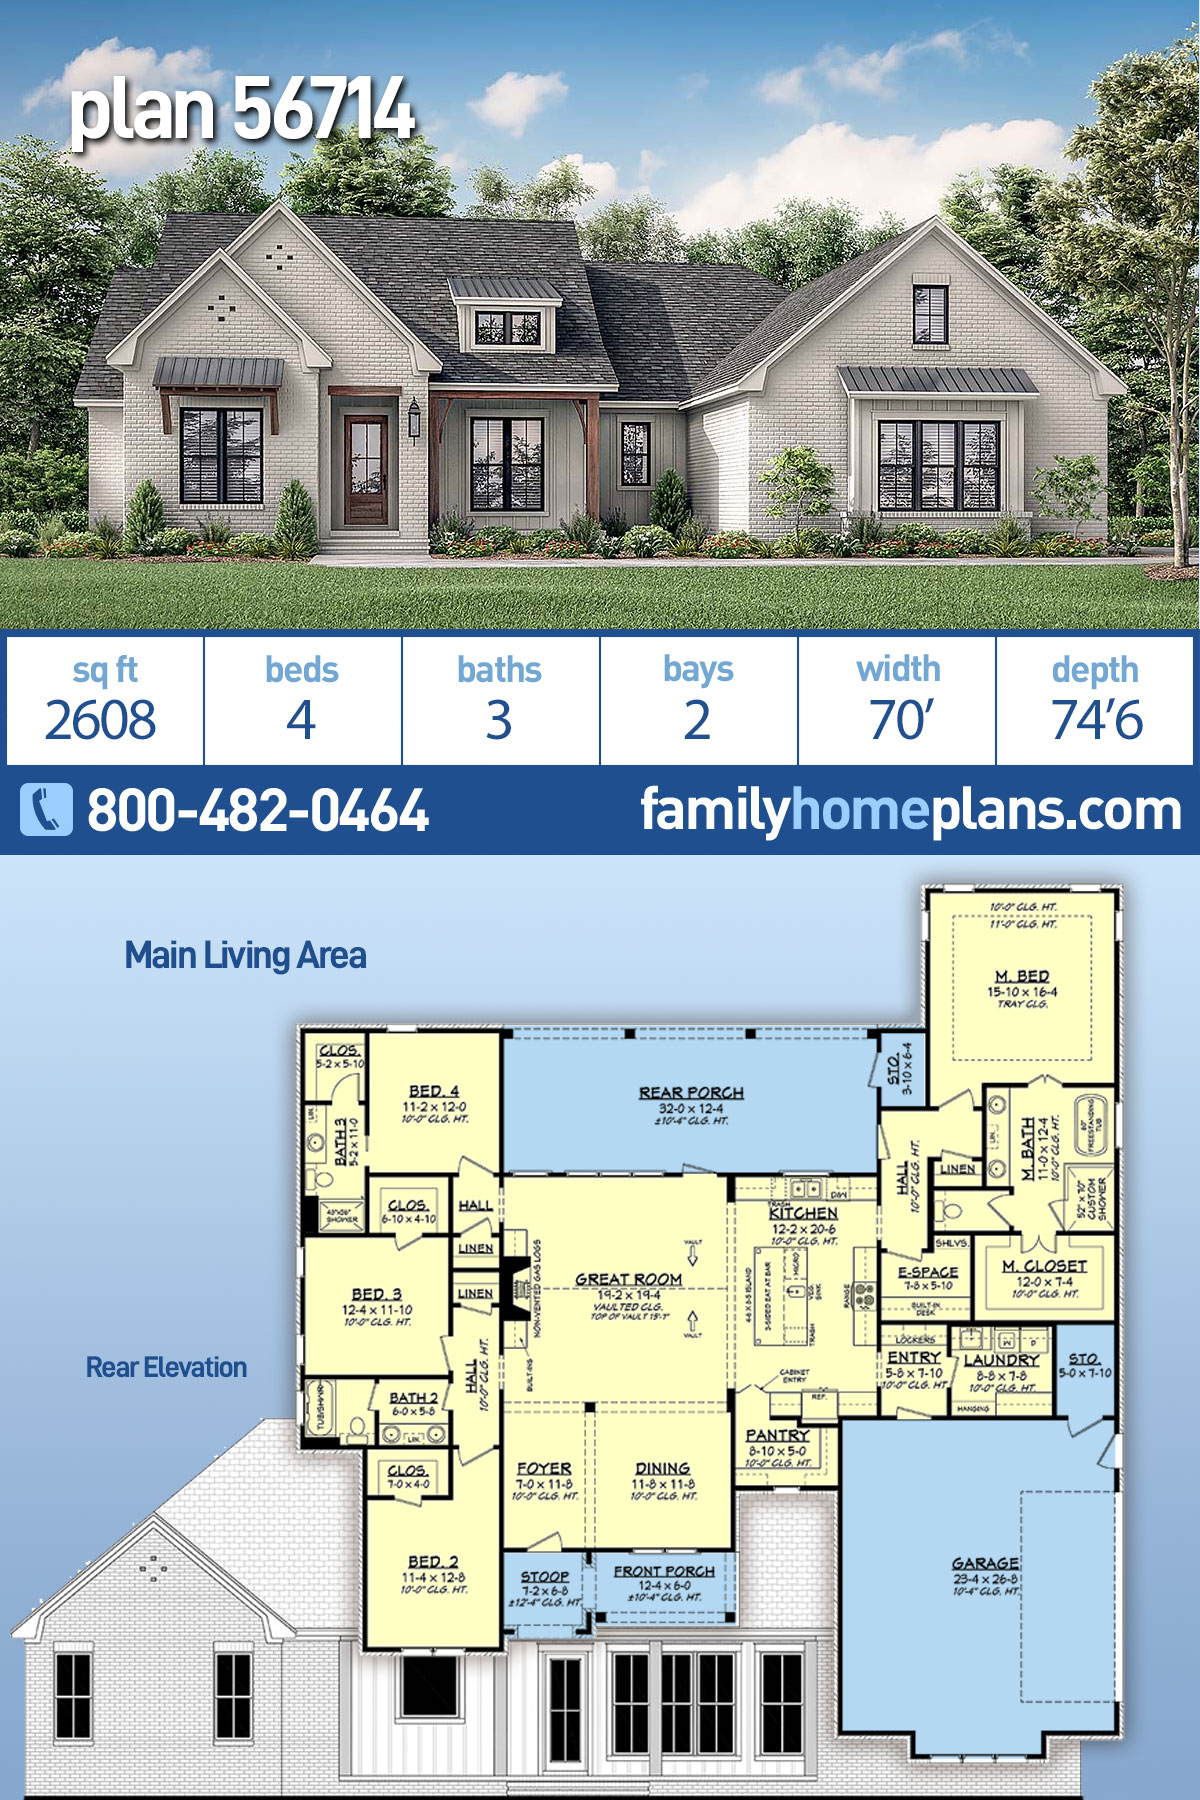 Contemporary, Country, Craftsman, Farmhouse, Southern, Traditional House Plan 56714 with 4 Beds, 3 Baths, 2 Car Garage